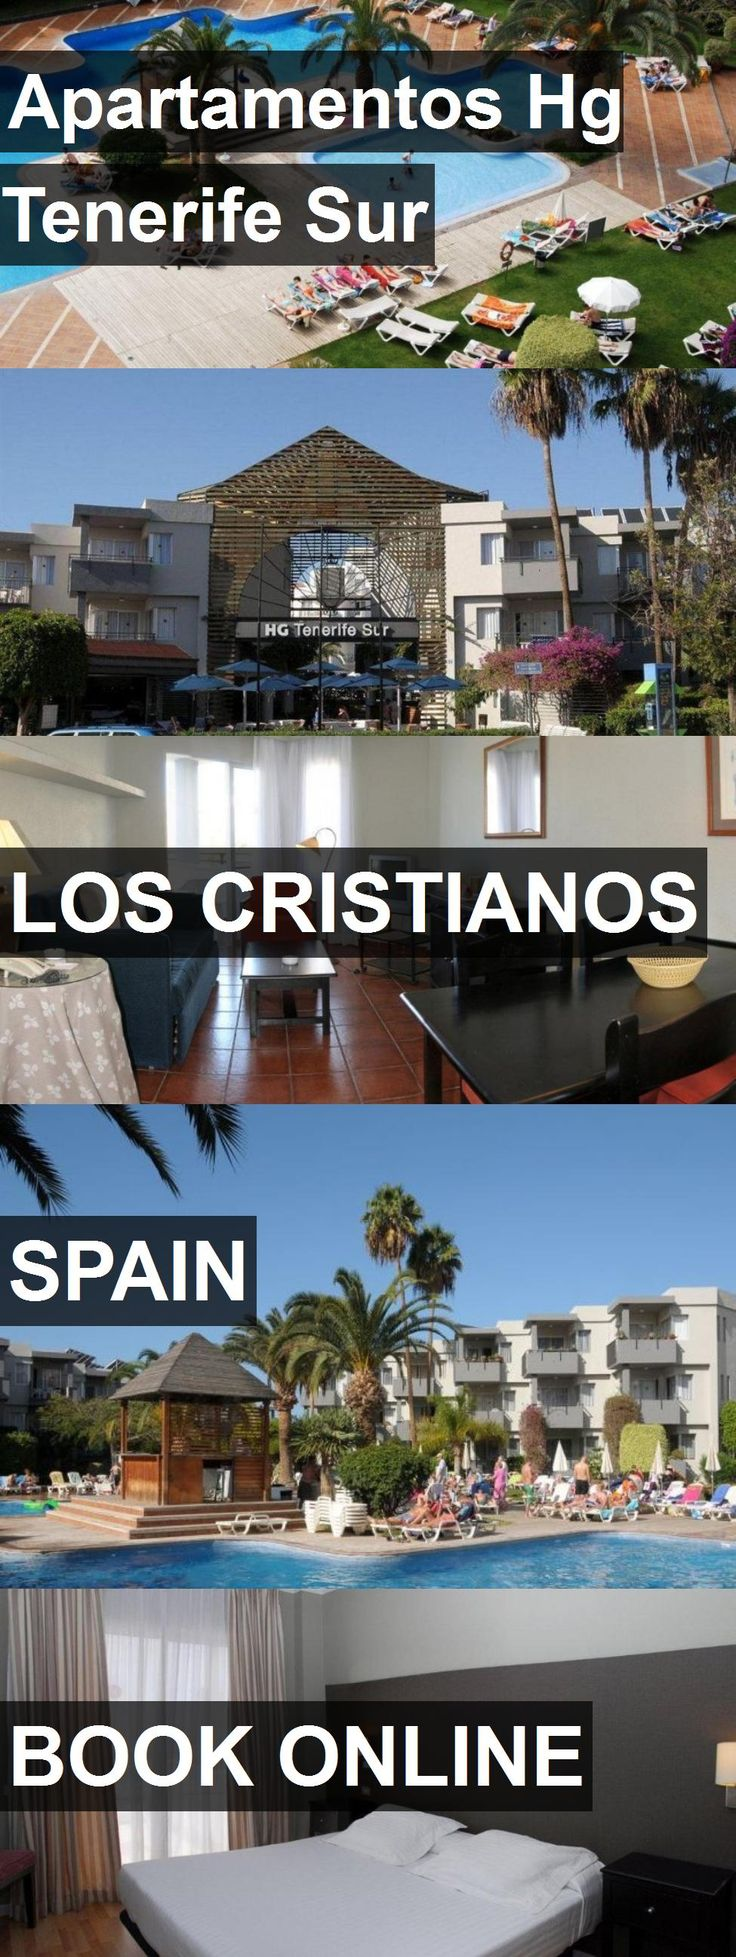 Hotel Apartamentos Hg Tenerife Sur in Los Cristianos, Spain. For more information, photos, reviews and best prices please follow the link. #Spain #LosCristianos #hotel #travel #vacation